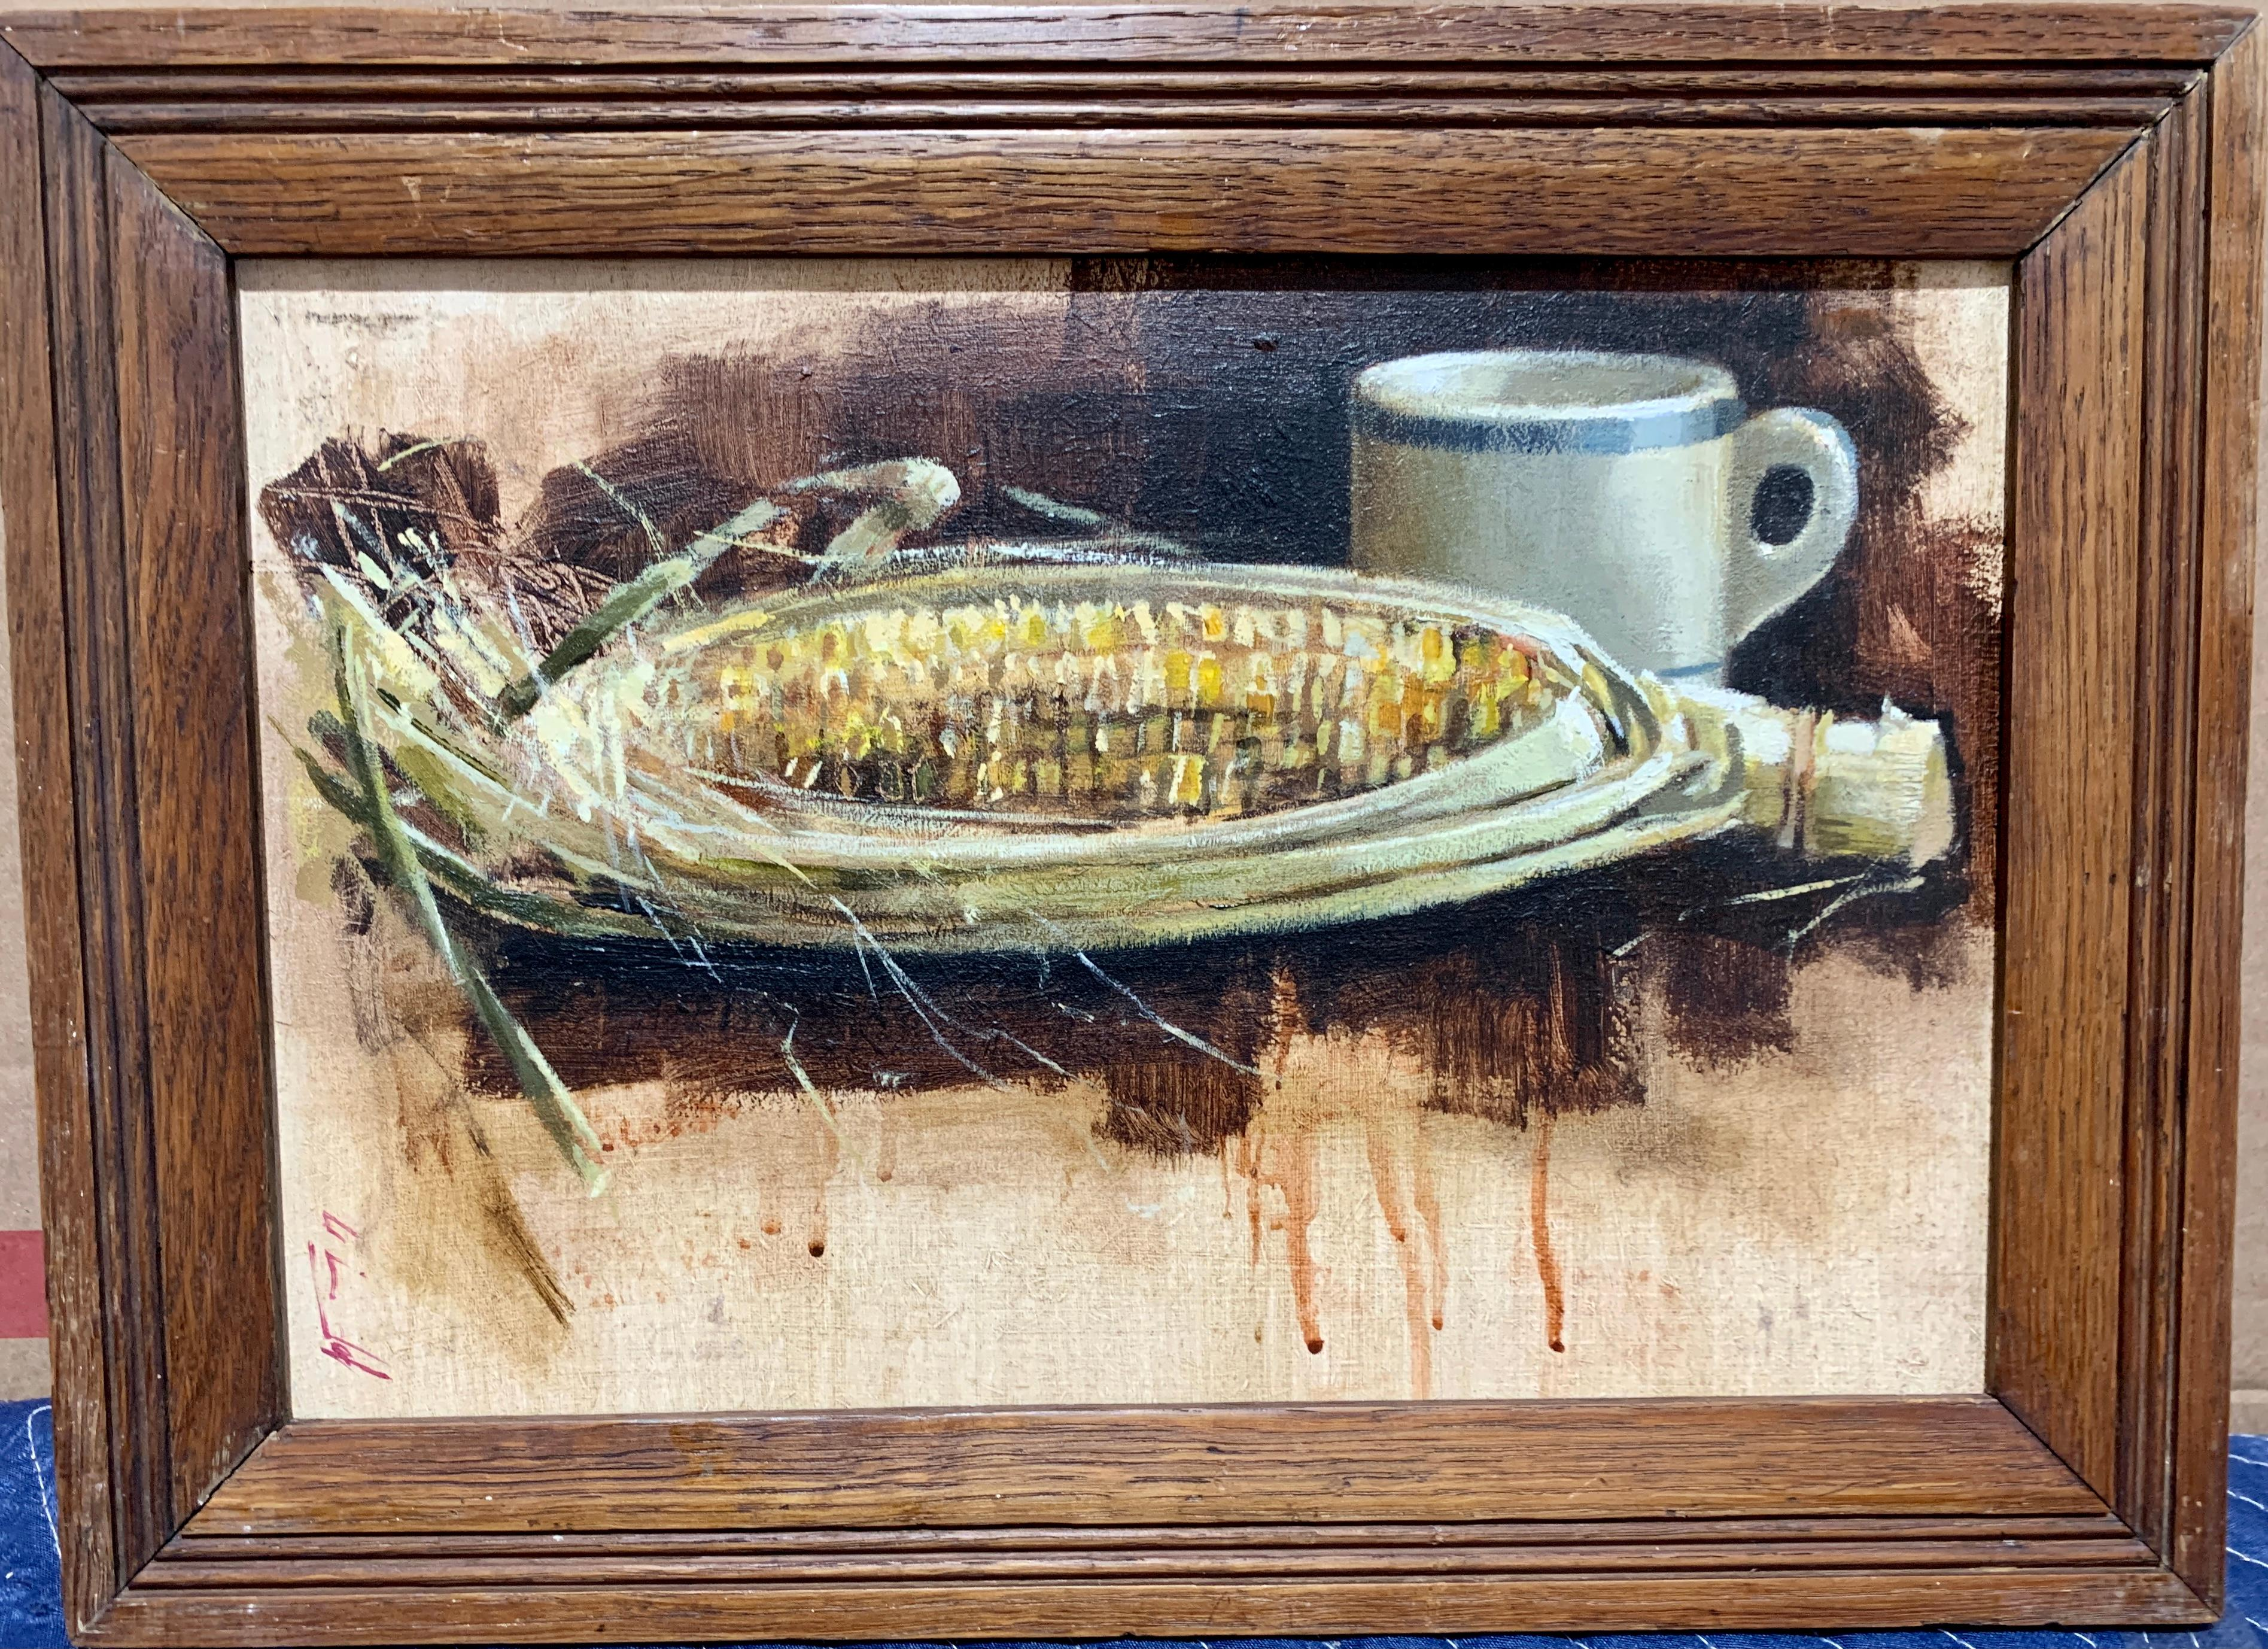 British 20th century,Still life of a Corn cob and cup on a table in an interior